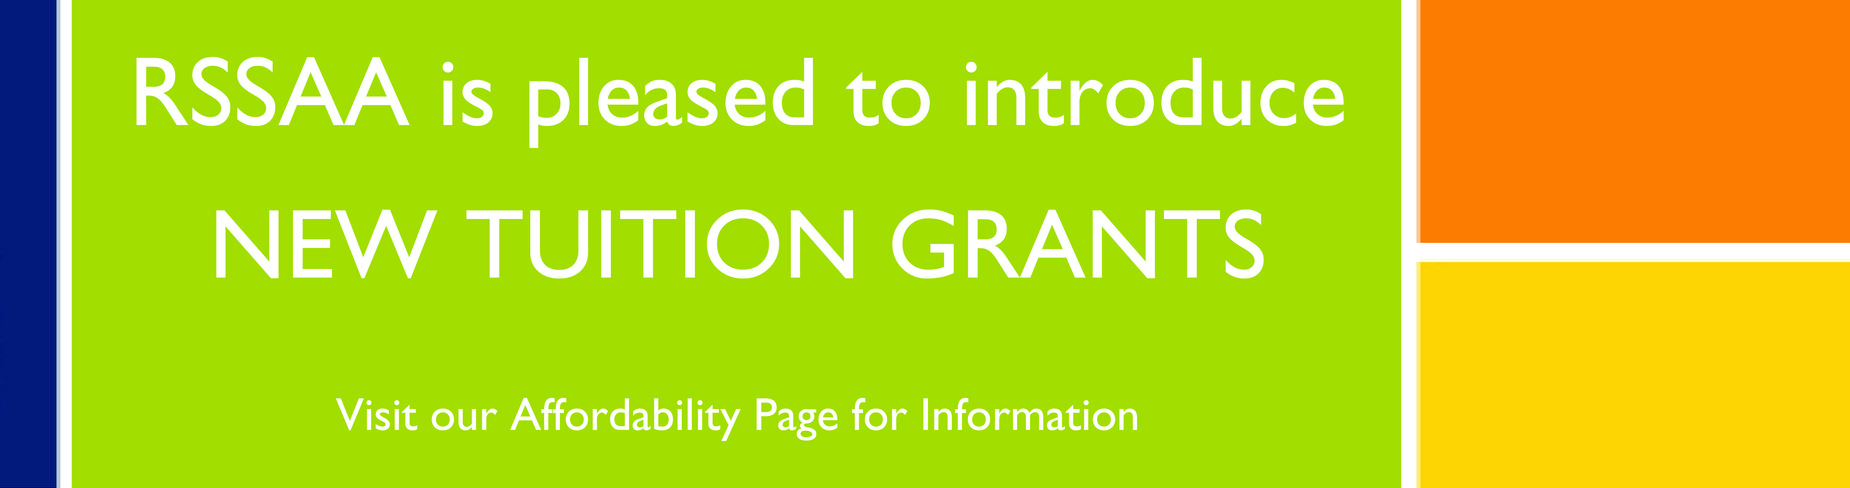 New Tuition Grants